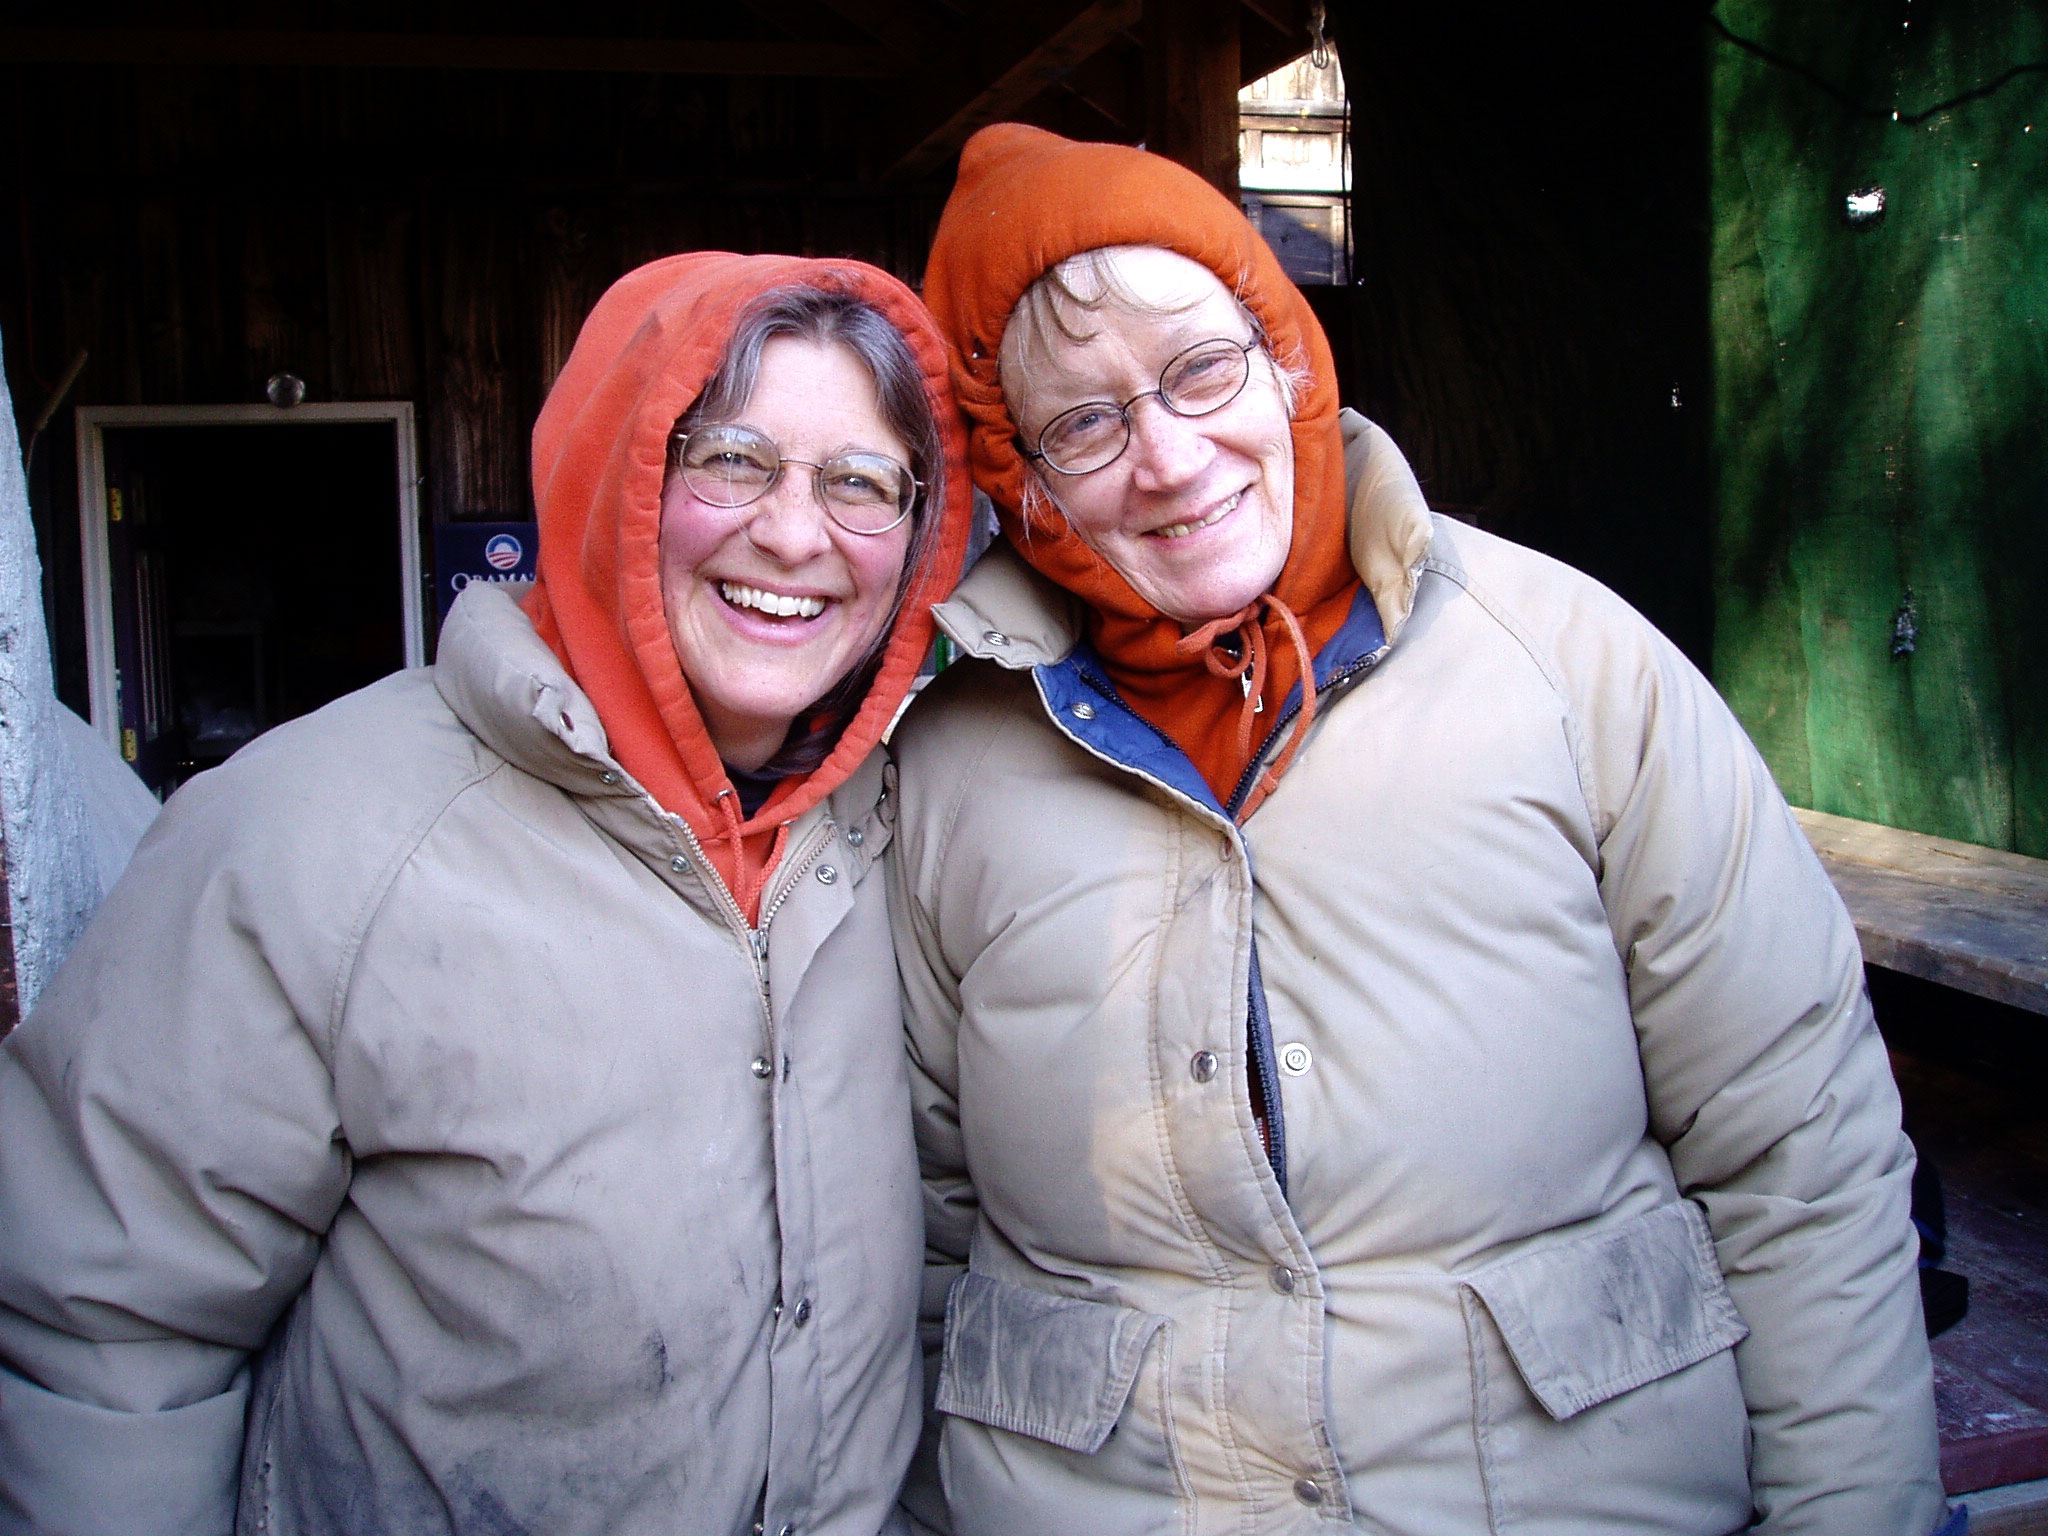 Paige Wilder, left, and the author, posing as twins at a firing in deep winter. Photo by Rolf Karlstrom, 2013.